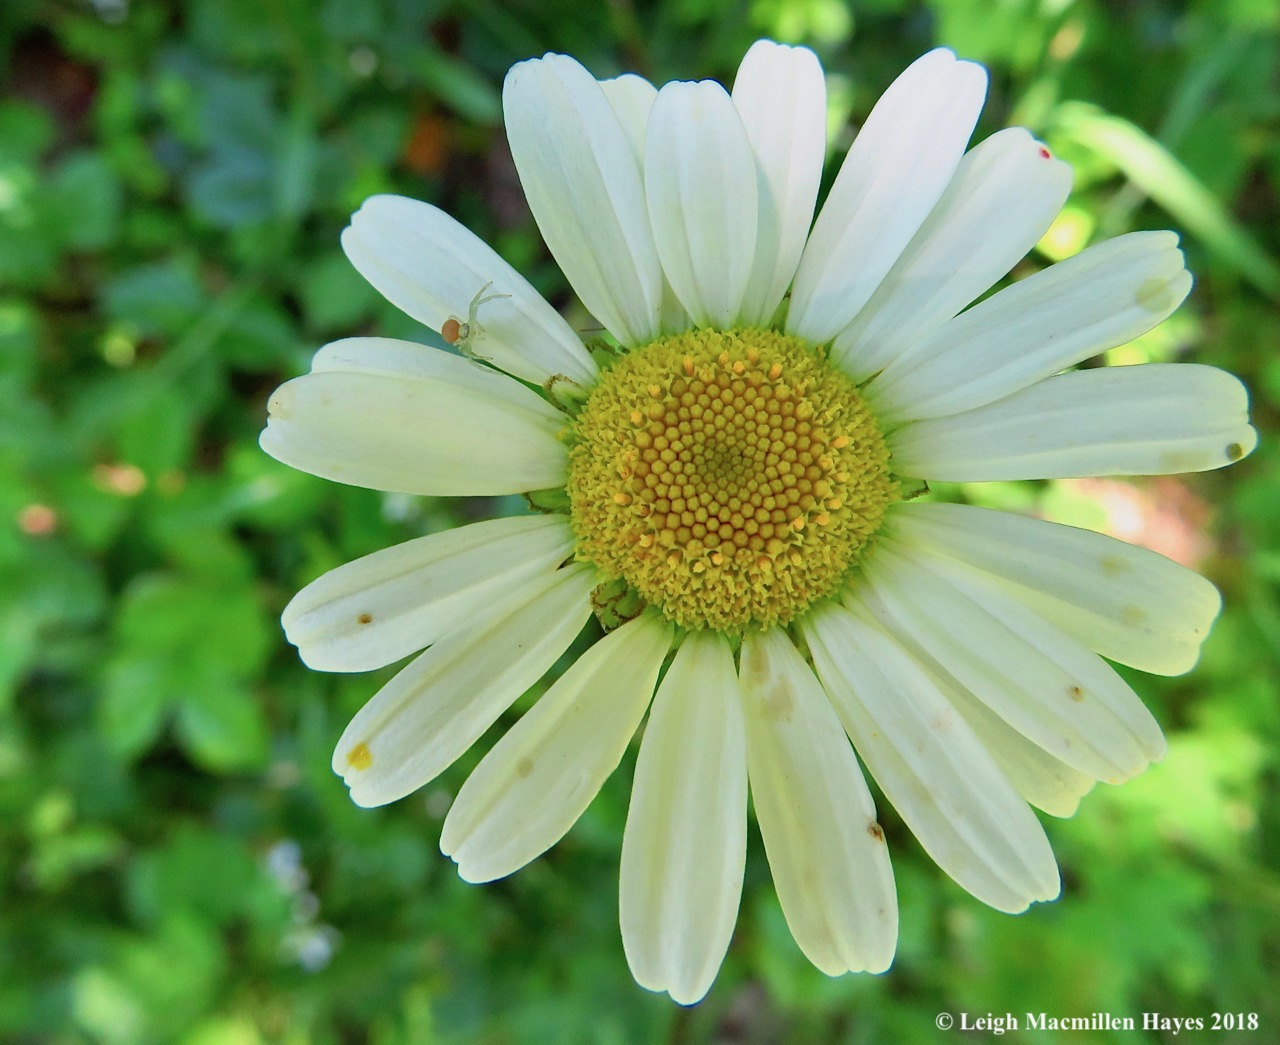 j4-daisy-and-crab-spider.jpg